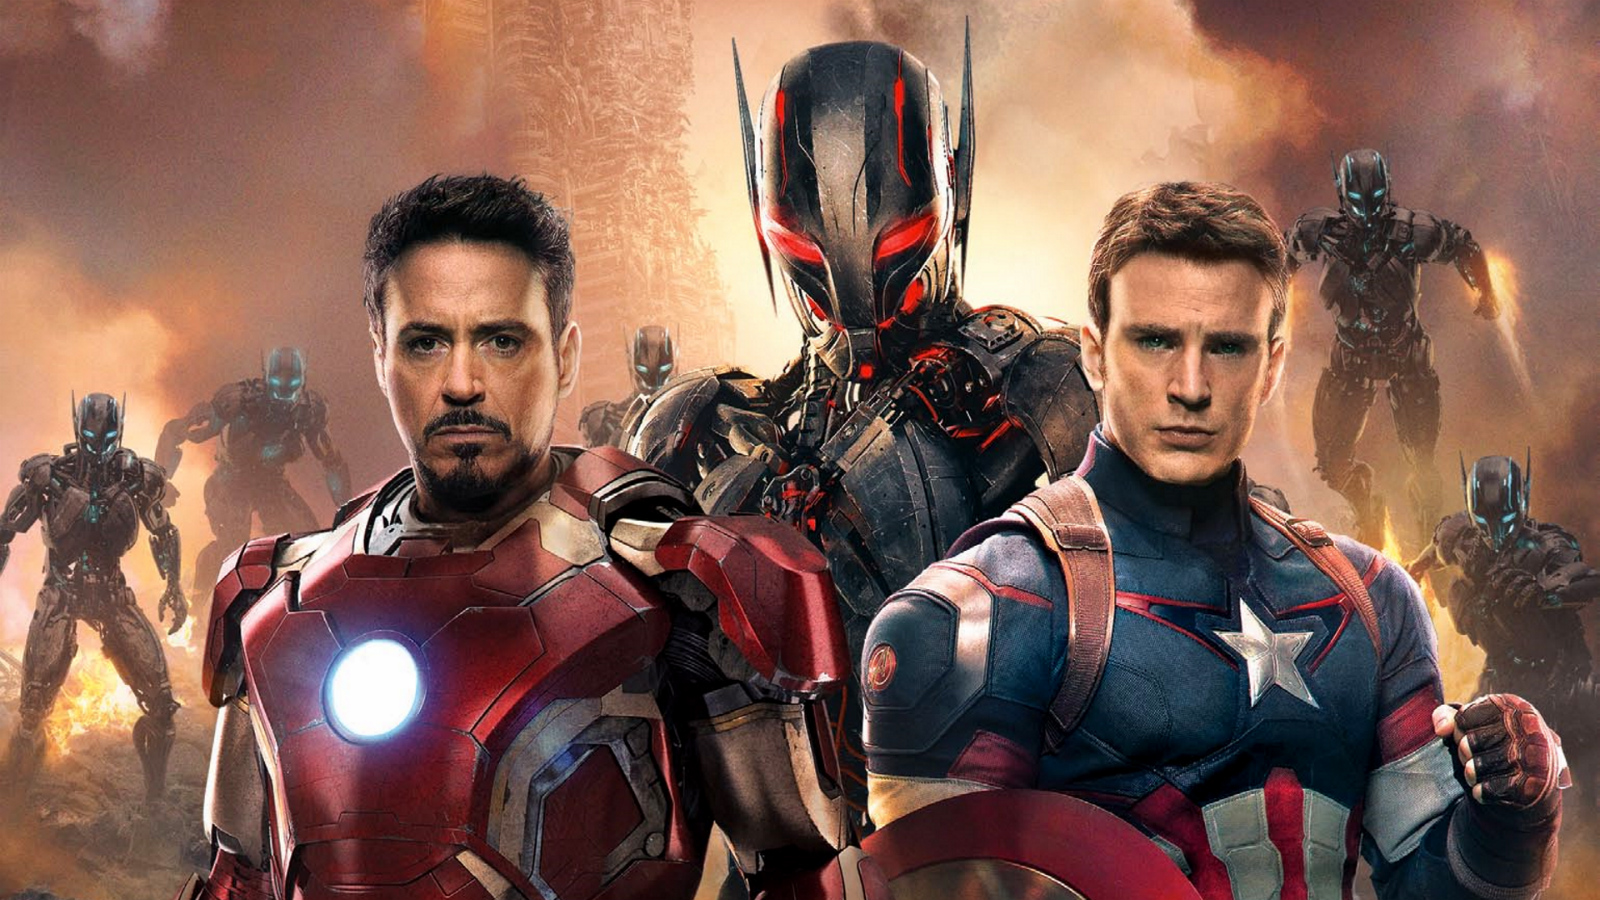 Avengers 2 Star Chris Hemsworth and Spider-Man in Captain America 3; Thor to Fight Alongside Iron Man?